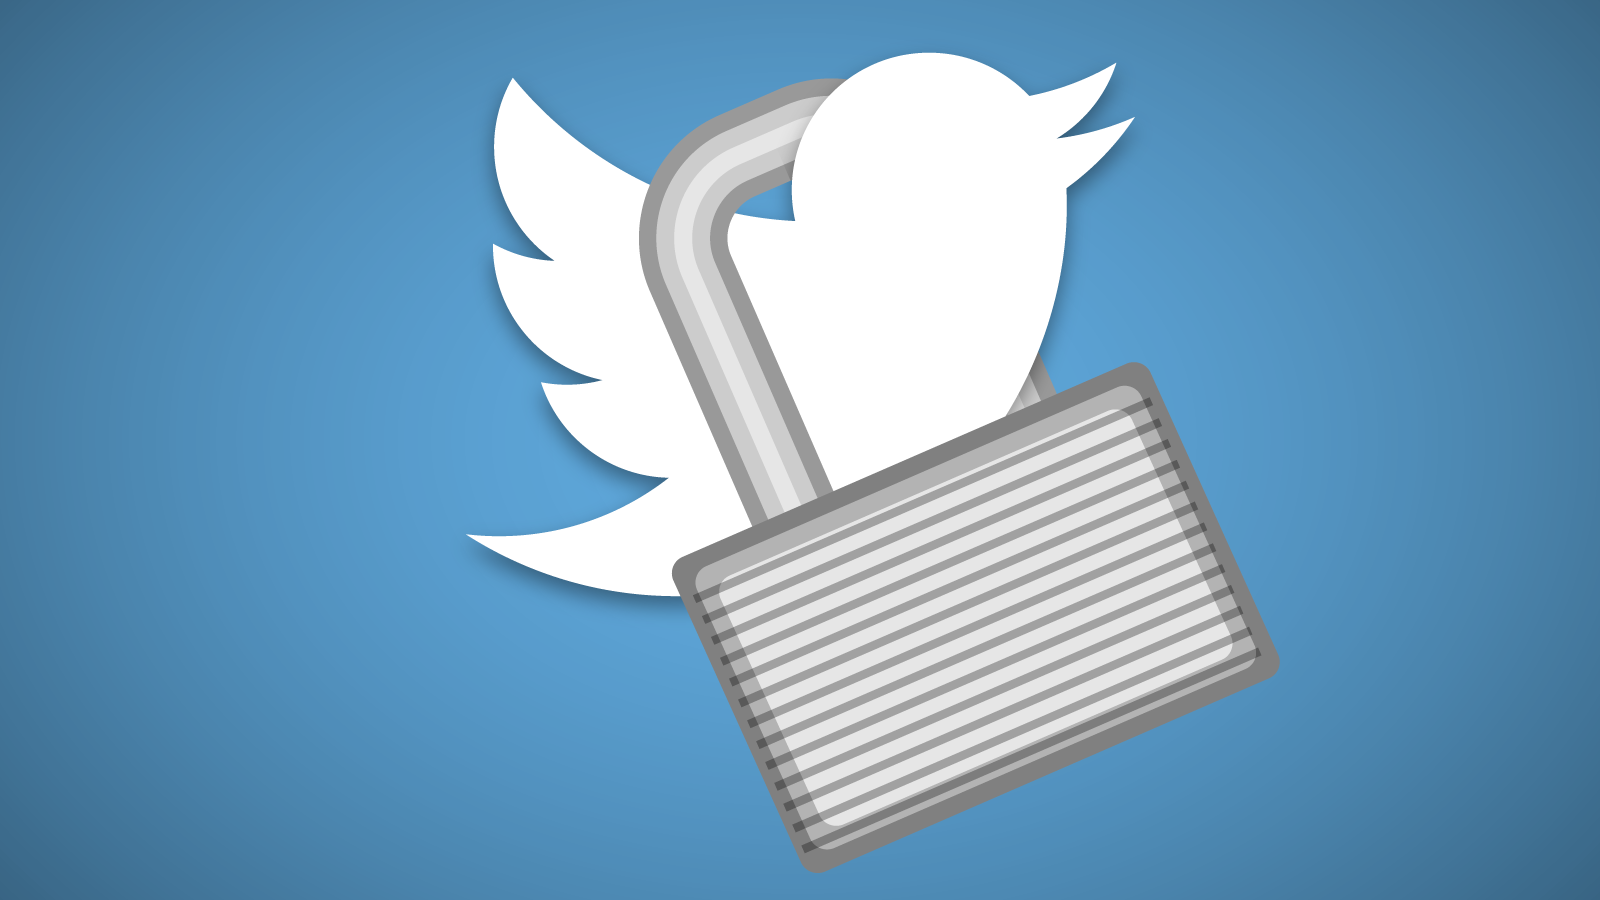 Twitter is testing encrypted DMs in bid to take on WhatsApp